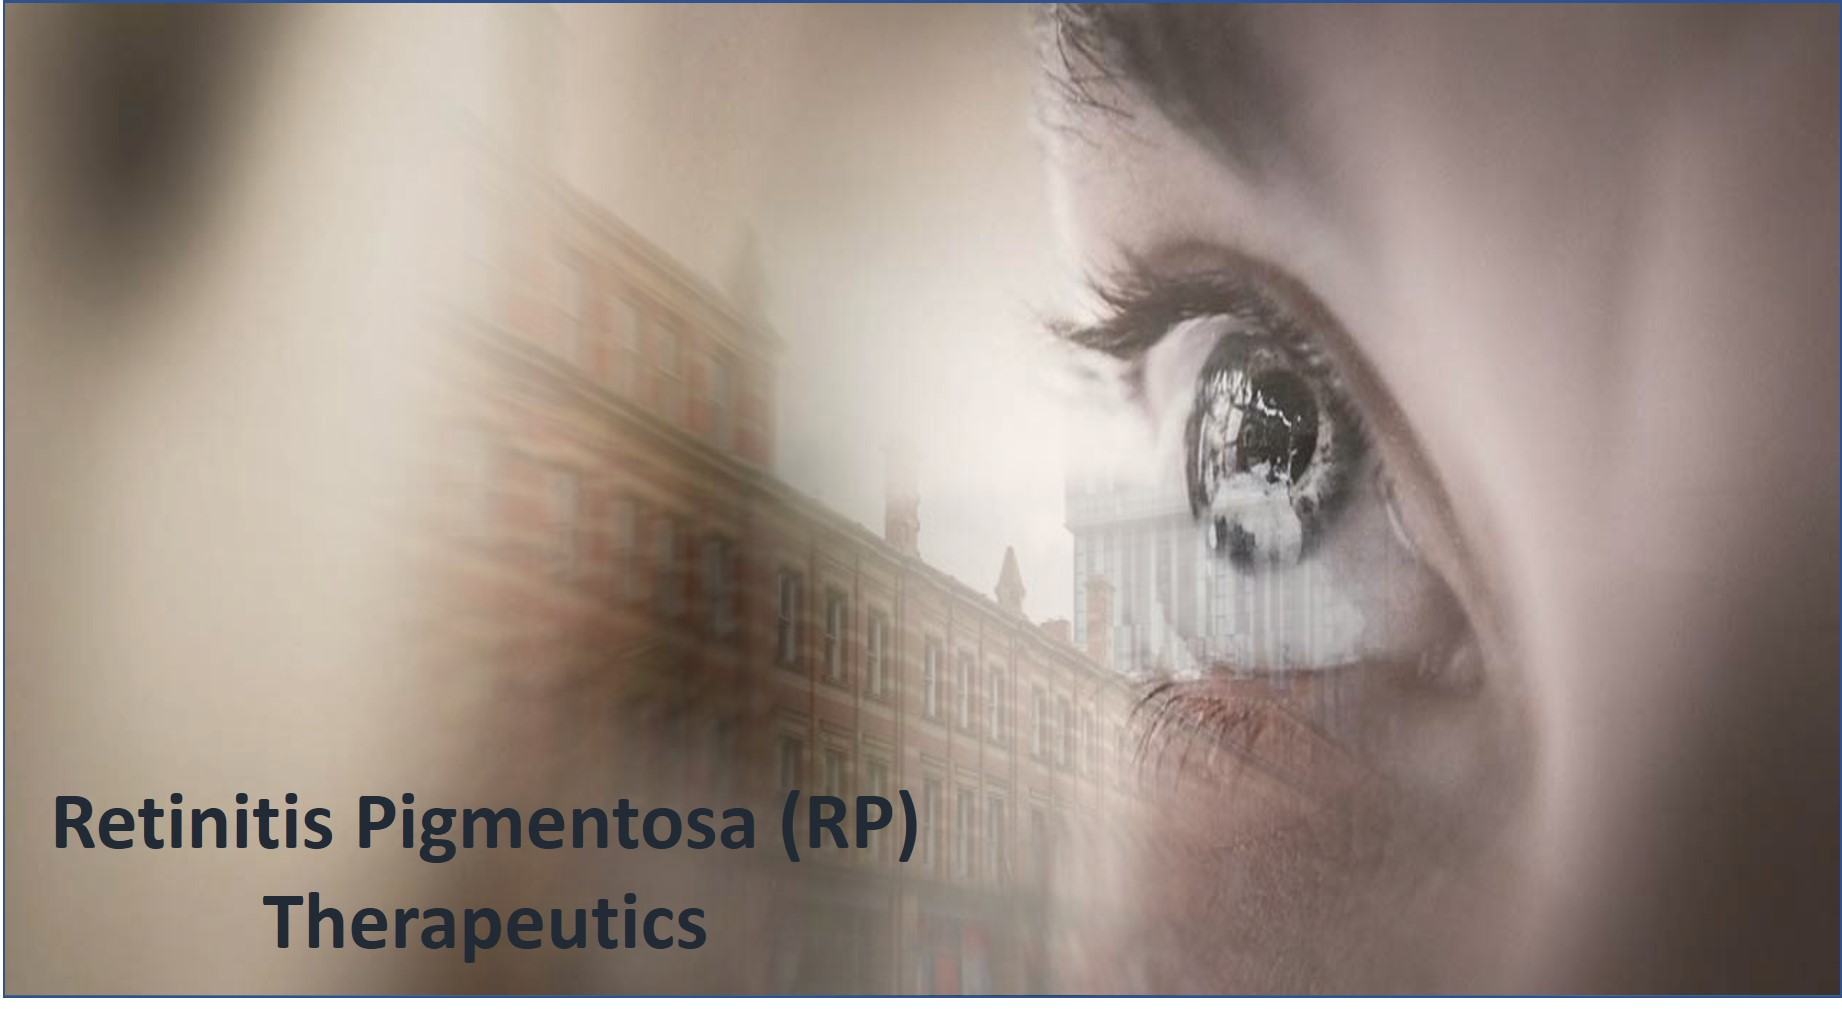 Retinitis Pigmentosa (RP) Therapeutics Pipeline to Witness Remarkable Growth due to Increased Number of Pipeline Candidates by Drug Developers